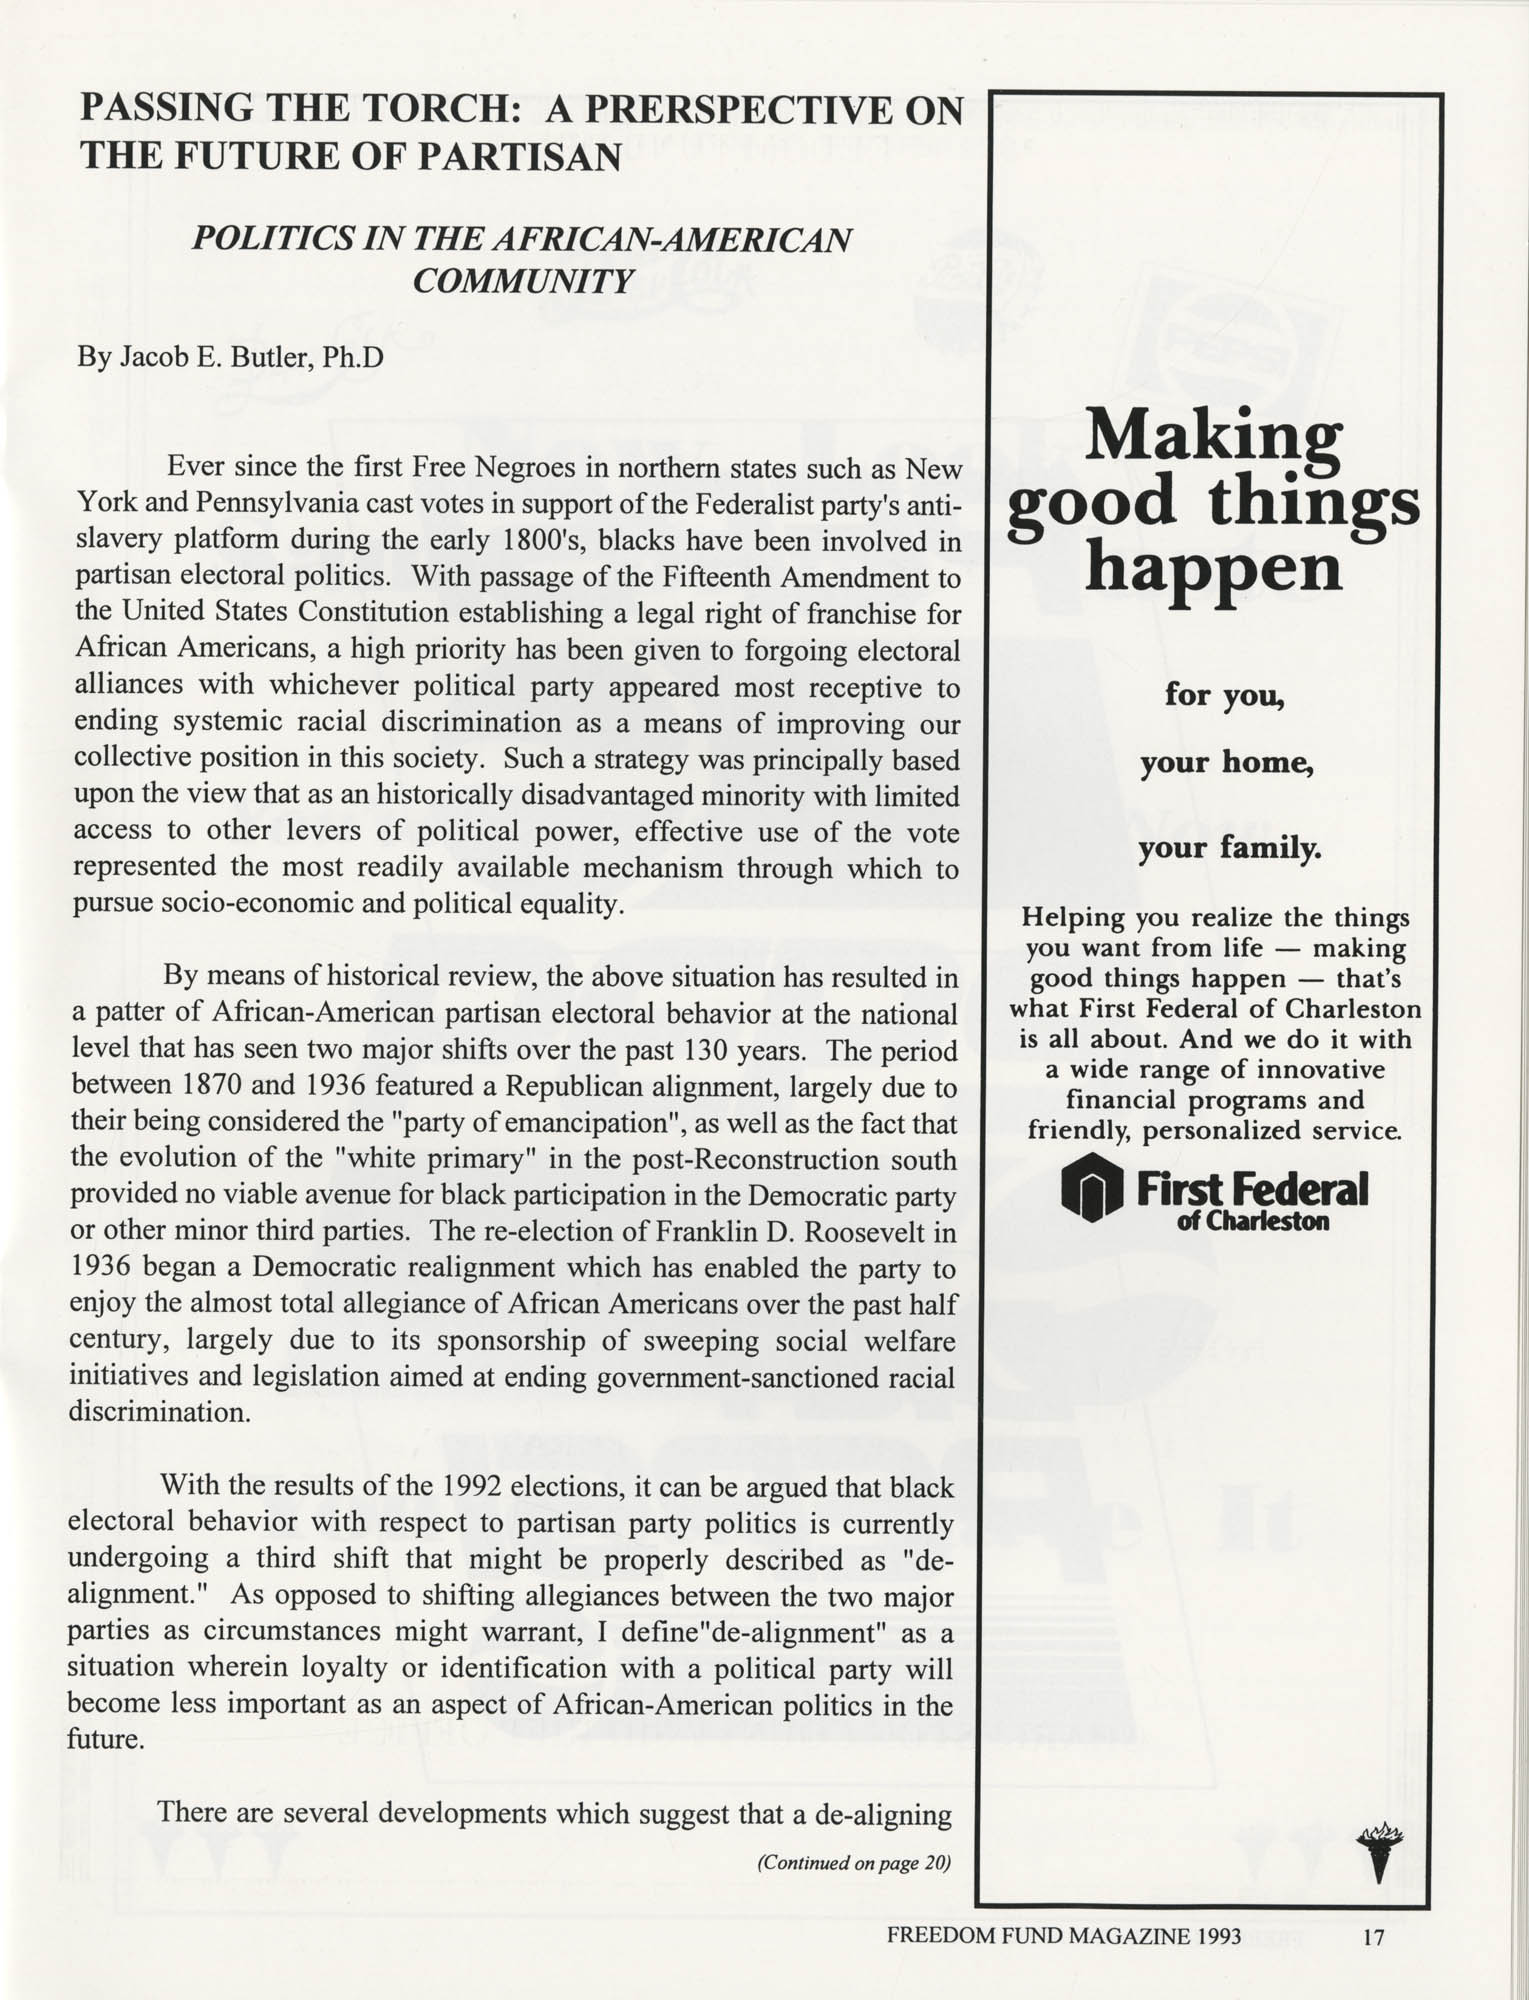 Freedom Fund Magazine, 1993, Page 17